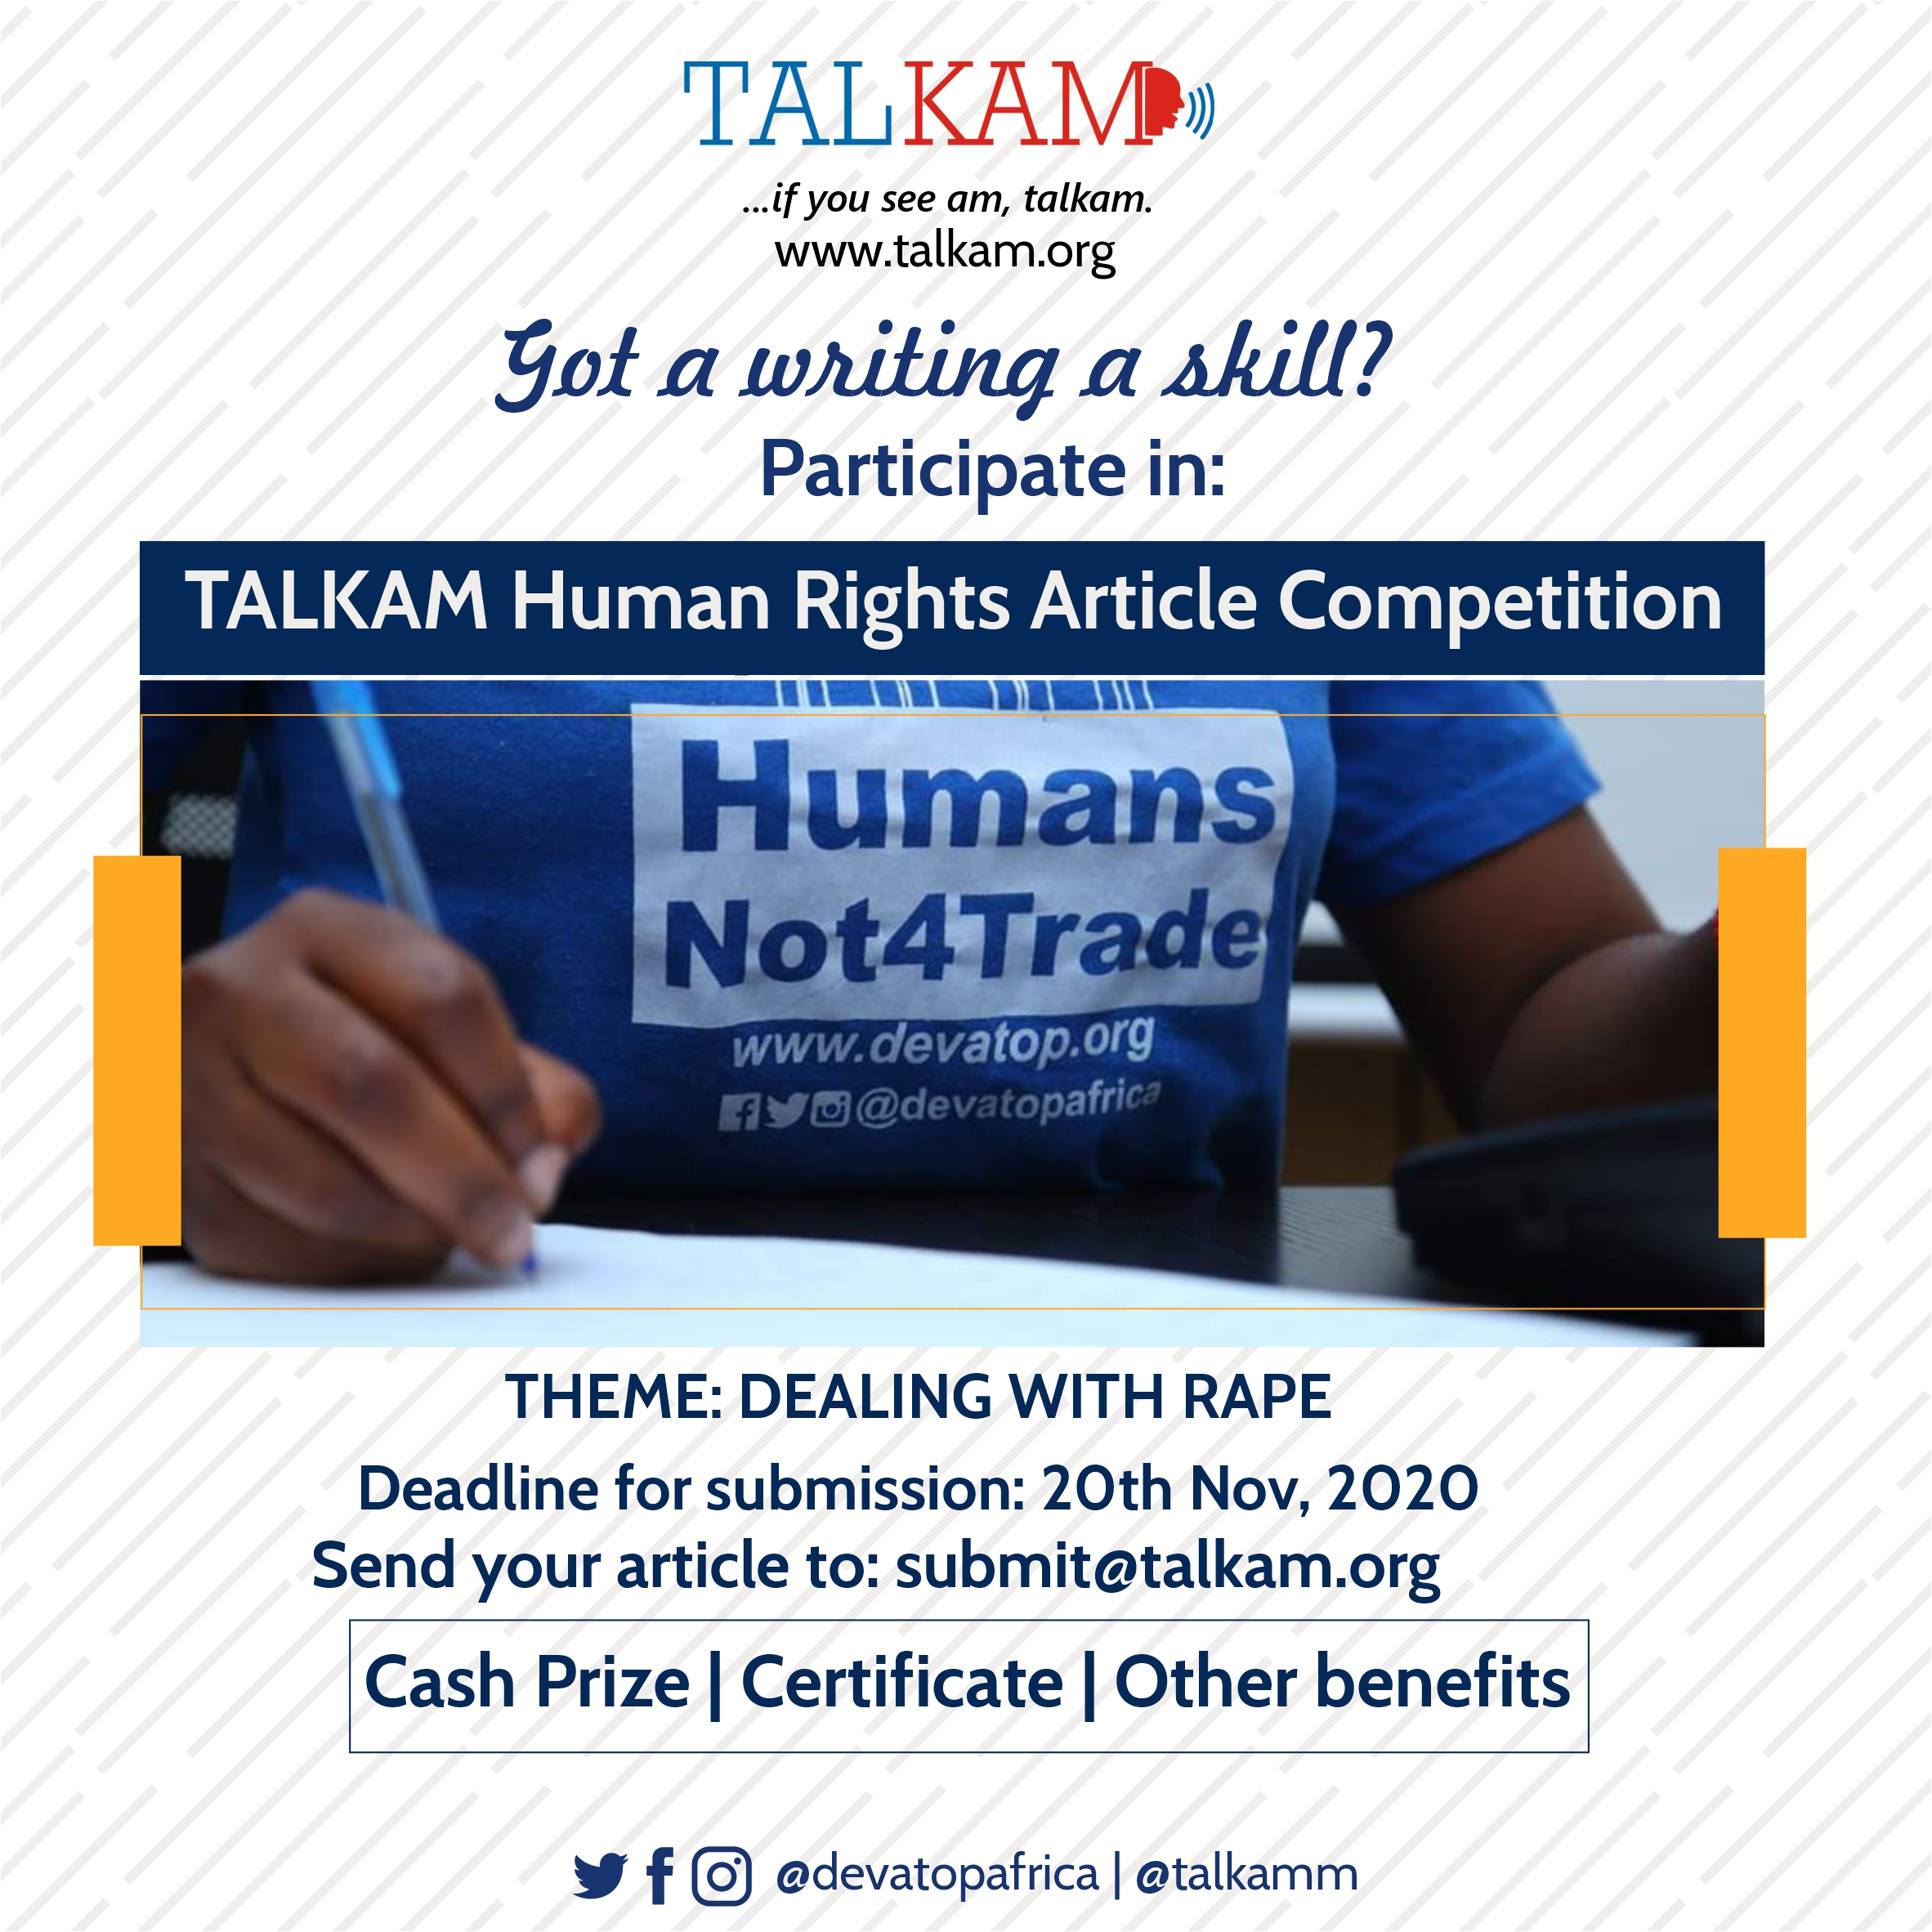 Talkam Human Rights Article Competition